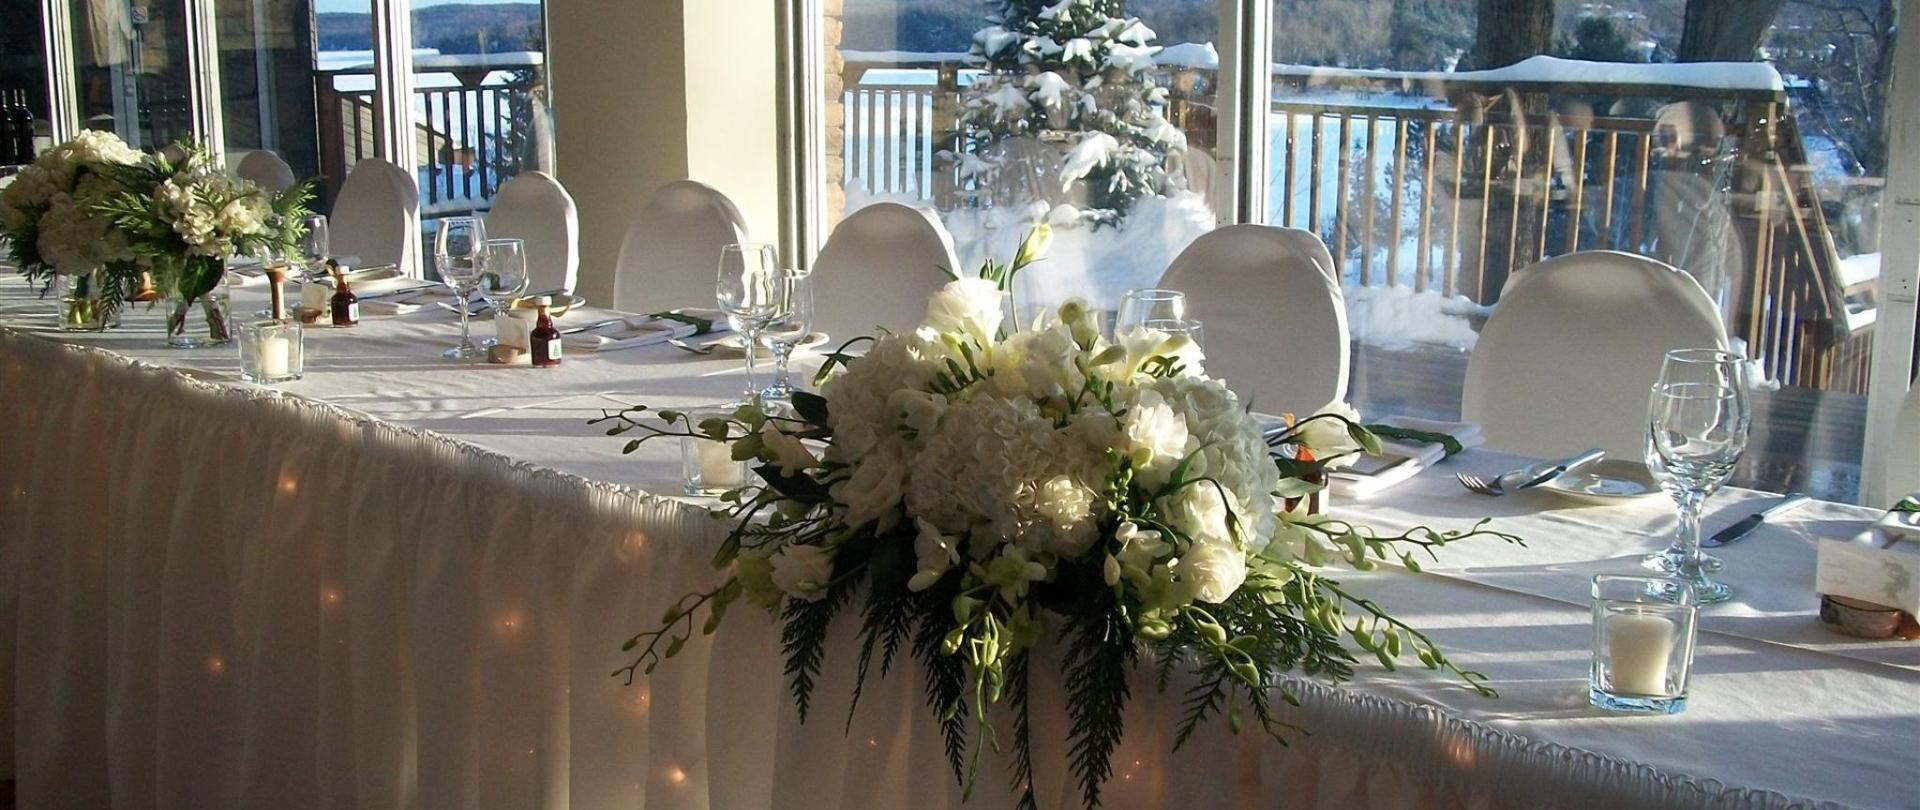 winterweddingheadtable.jpg